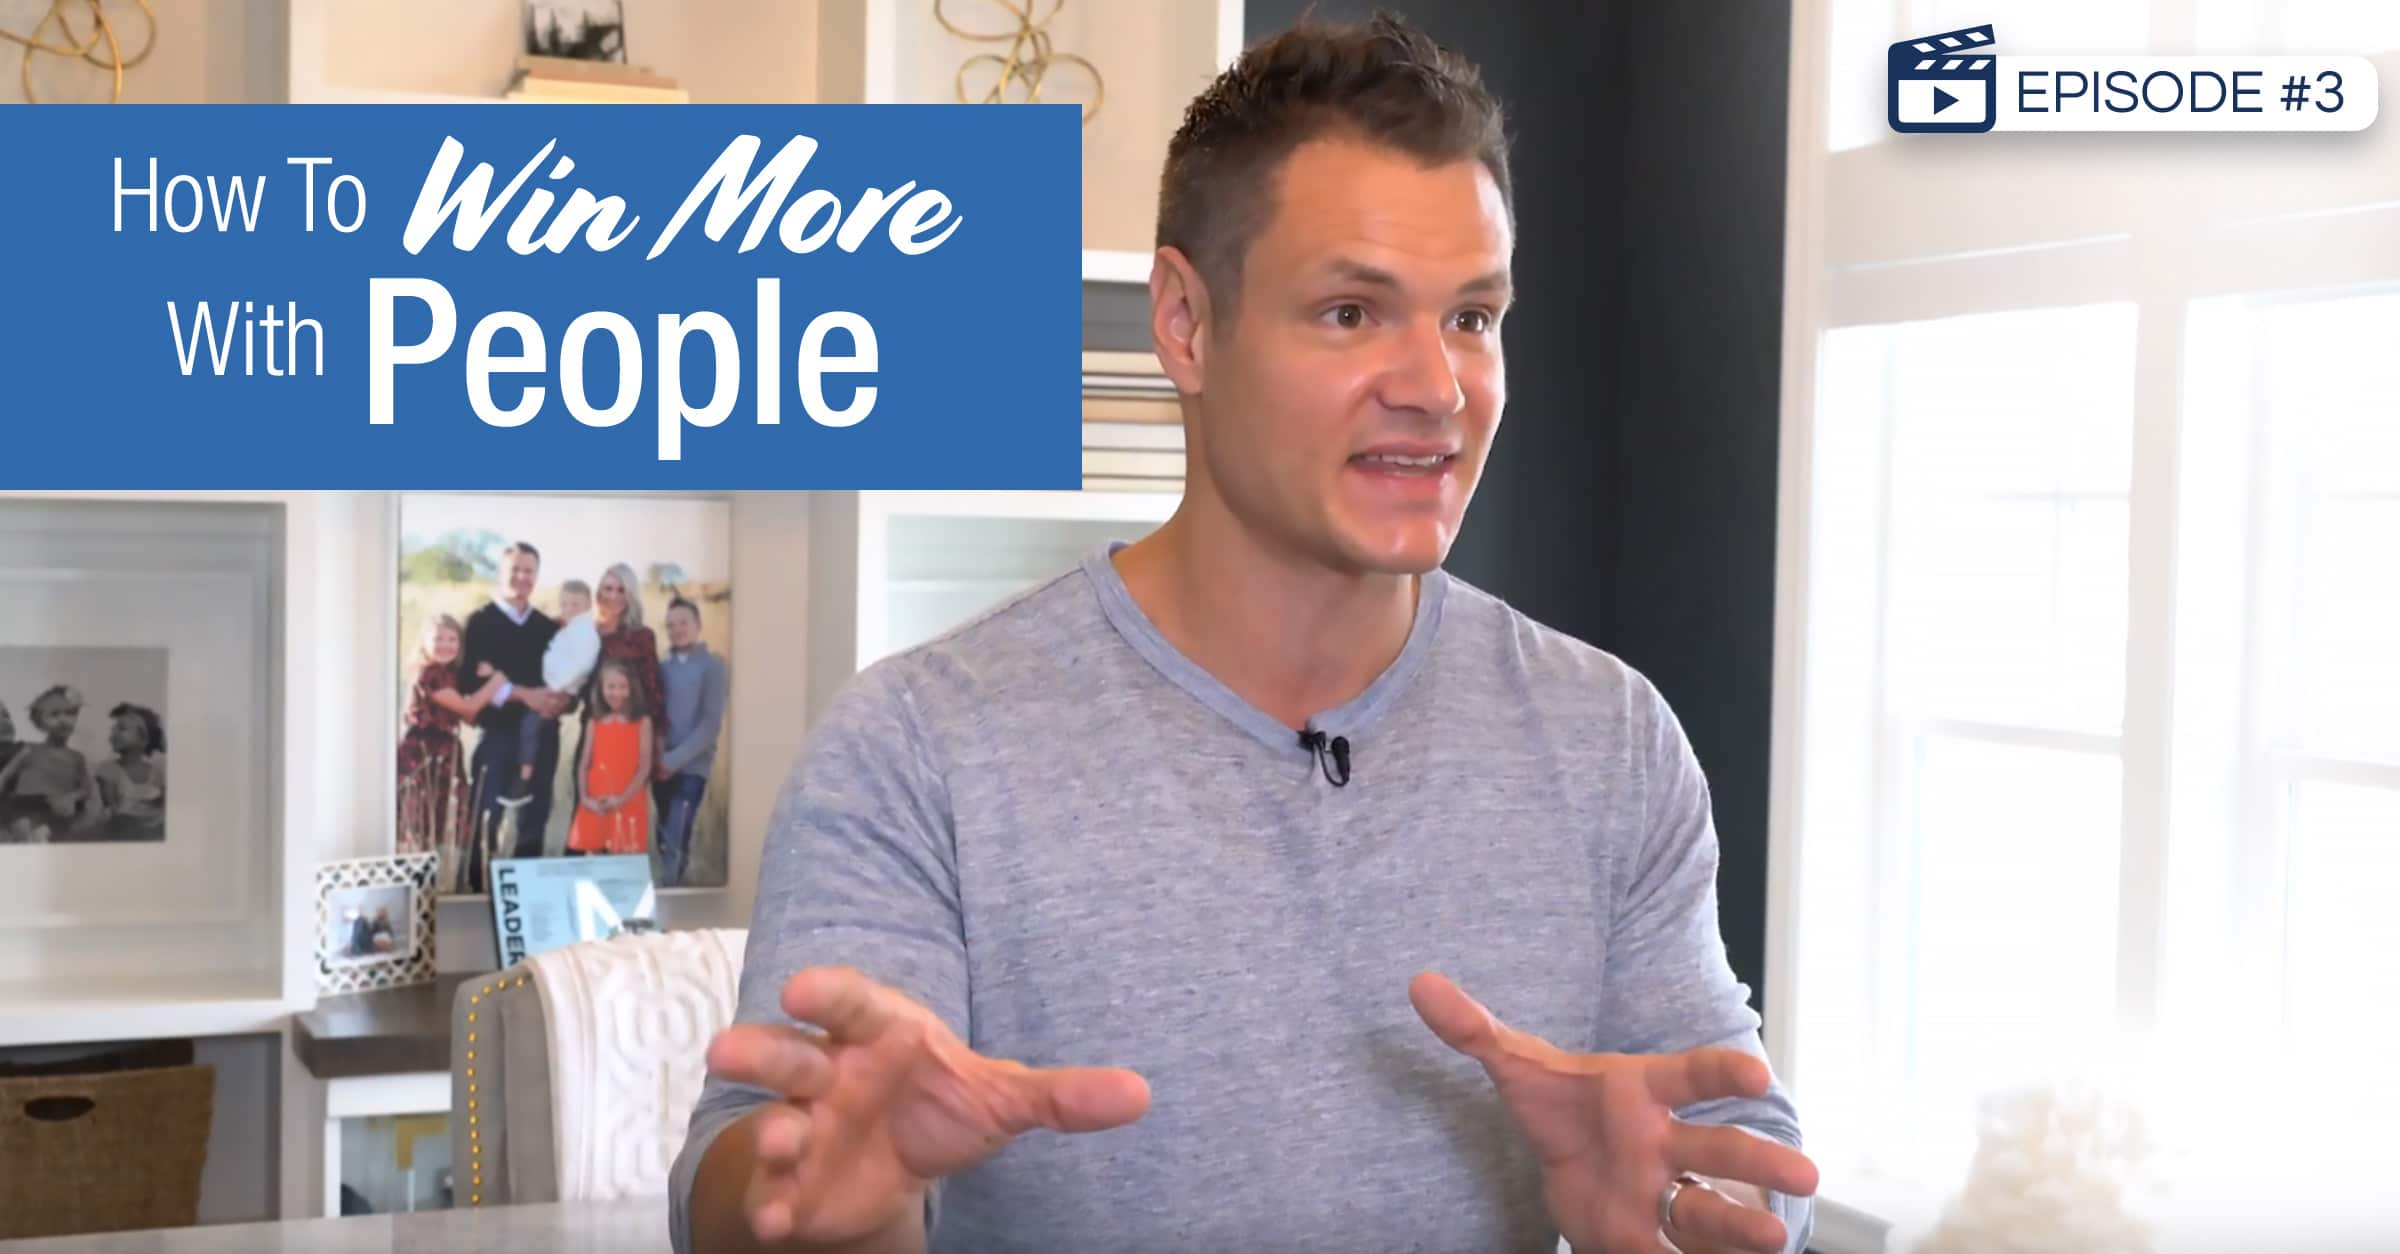 [Episode #3] How To Win More With People